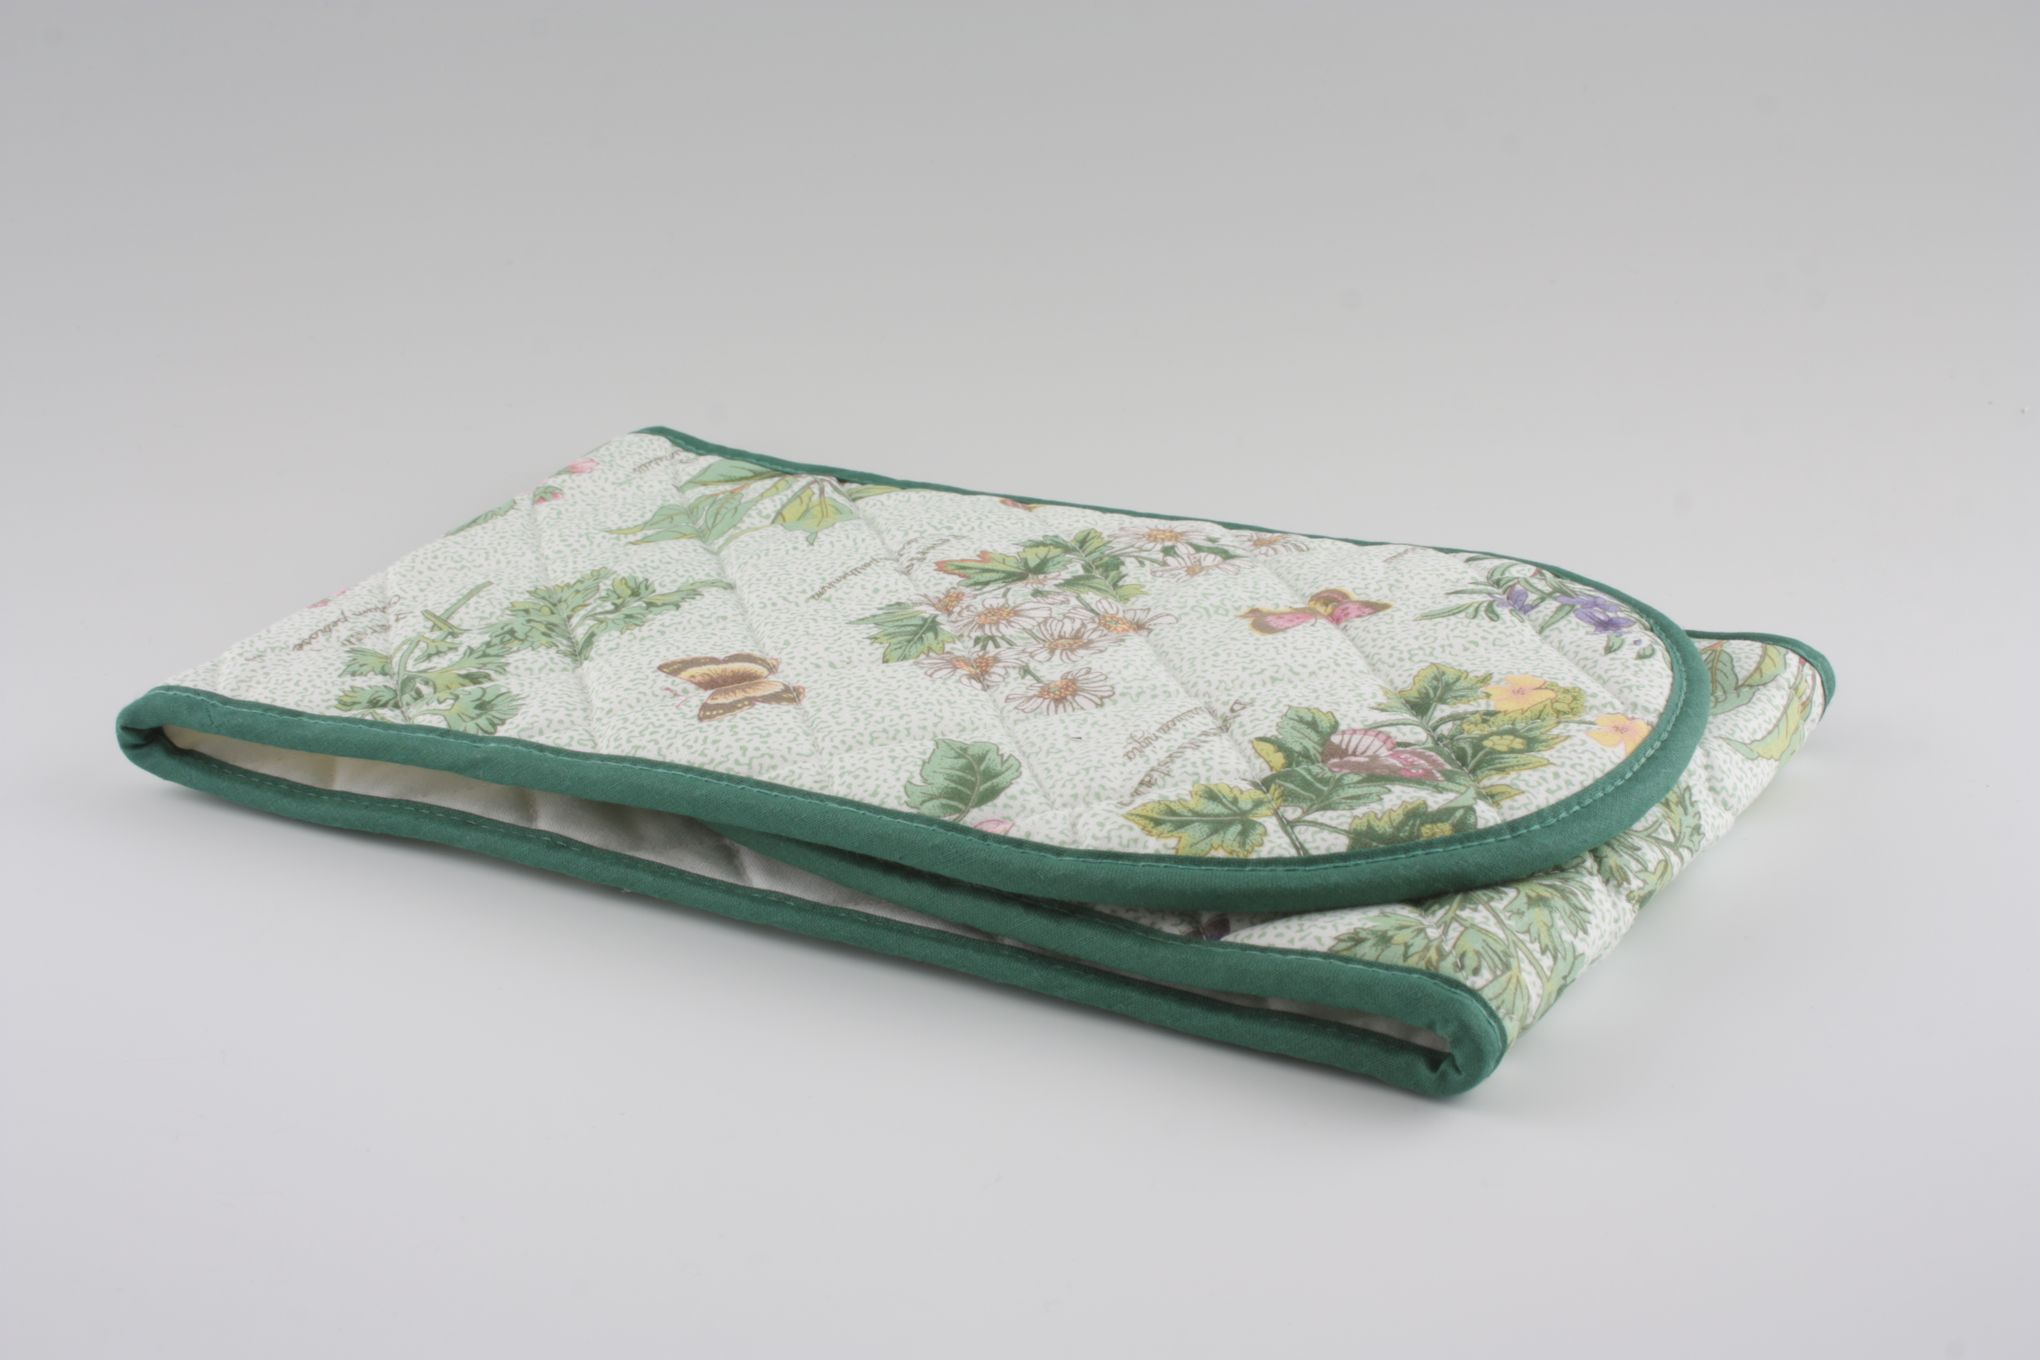 Royal Worcester Worcester Herbs Oven Glove thumb 1